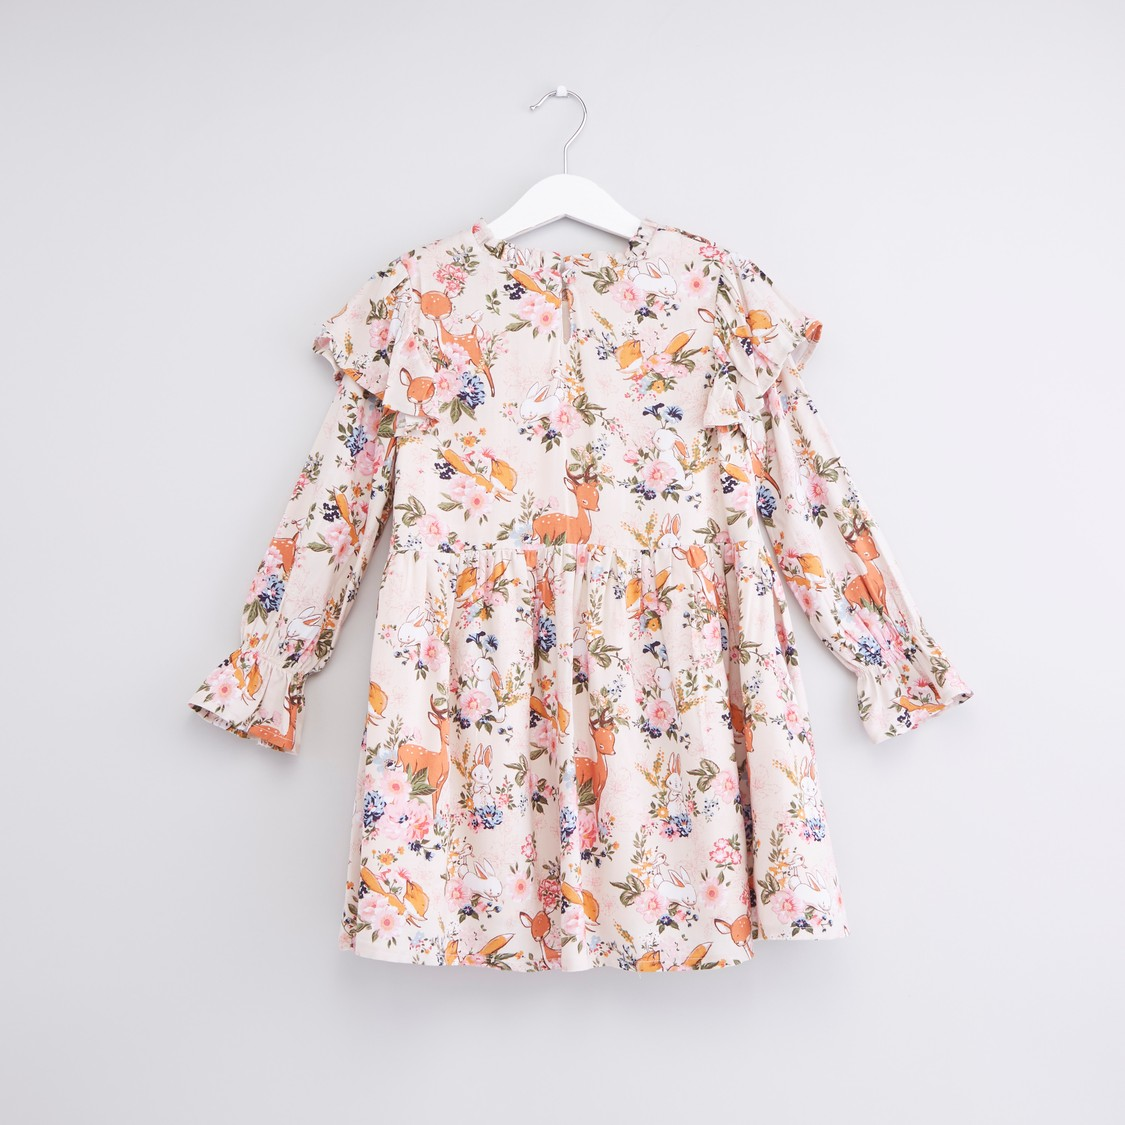 Printed Dress with Ruffles and Long Sleeves